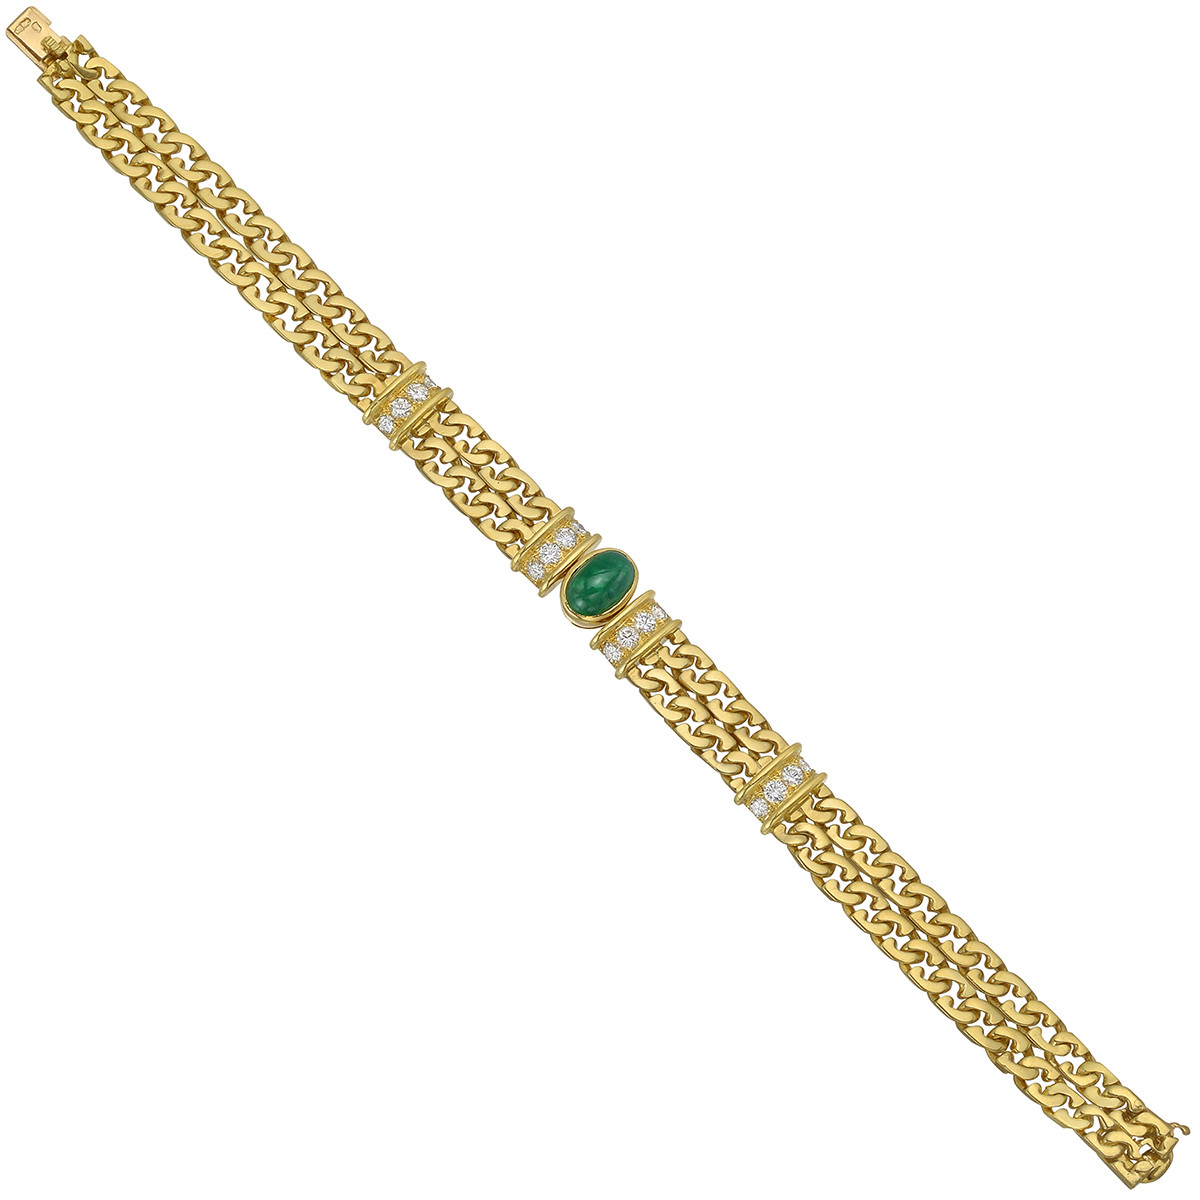 18k Gold, Emerald & Diamond Double Chain Bracelet